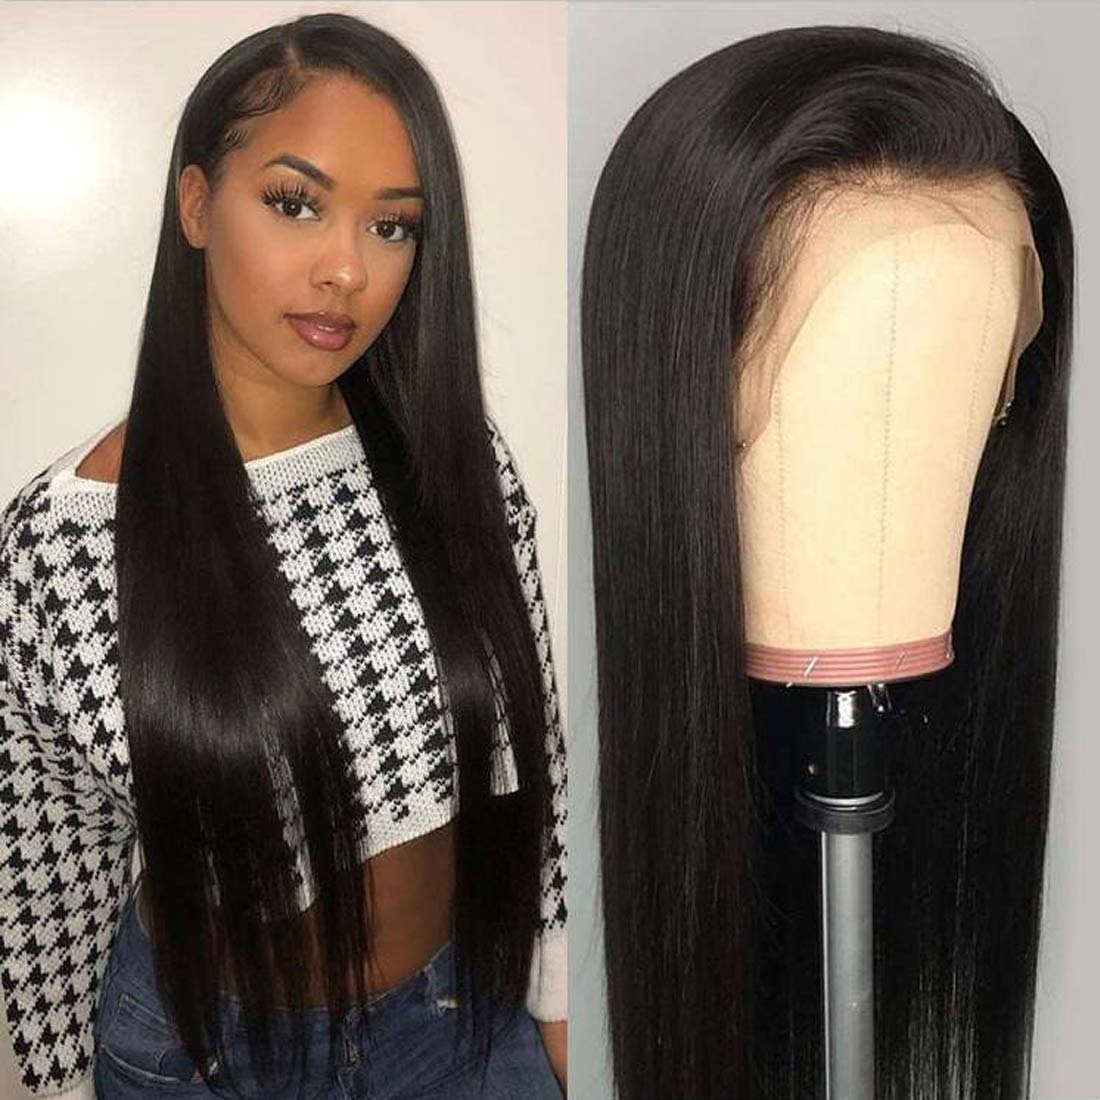 Beauty Forever 13x6 Lace Front Wig Silky Straight Human Hair Wig 150% Density Human Hair Wigs With Baby Hair For Black Women Remy Hair Glueless Lace Front Wig Pre Plucked (18 Inch)